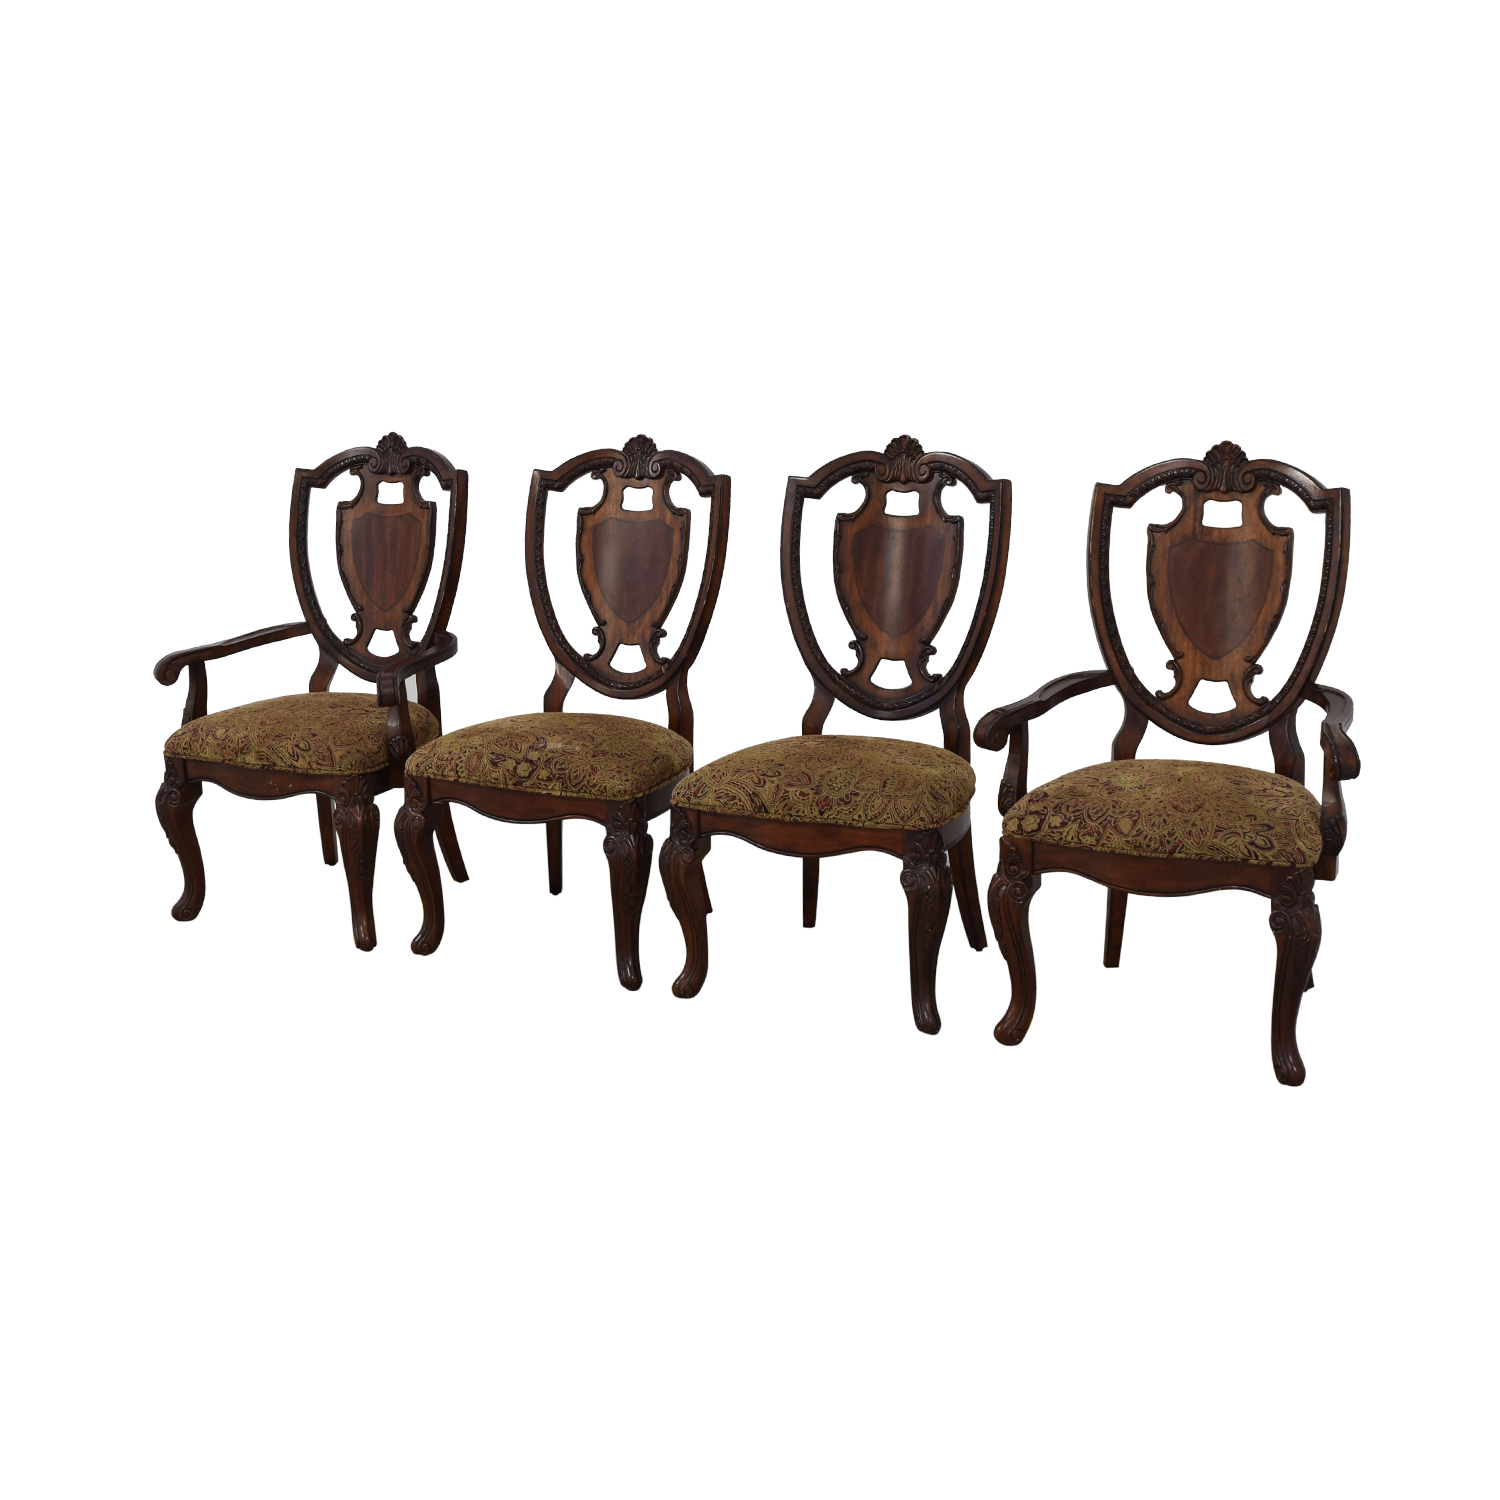 Macy's Macy's Upholstered Seat Dining Chairs used